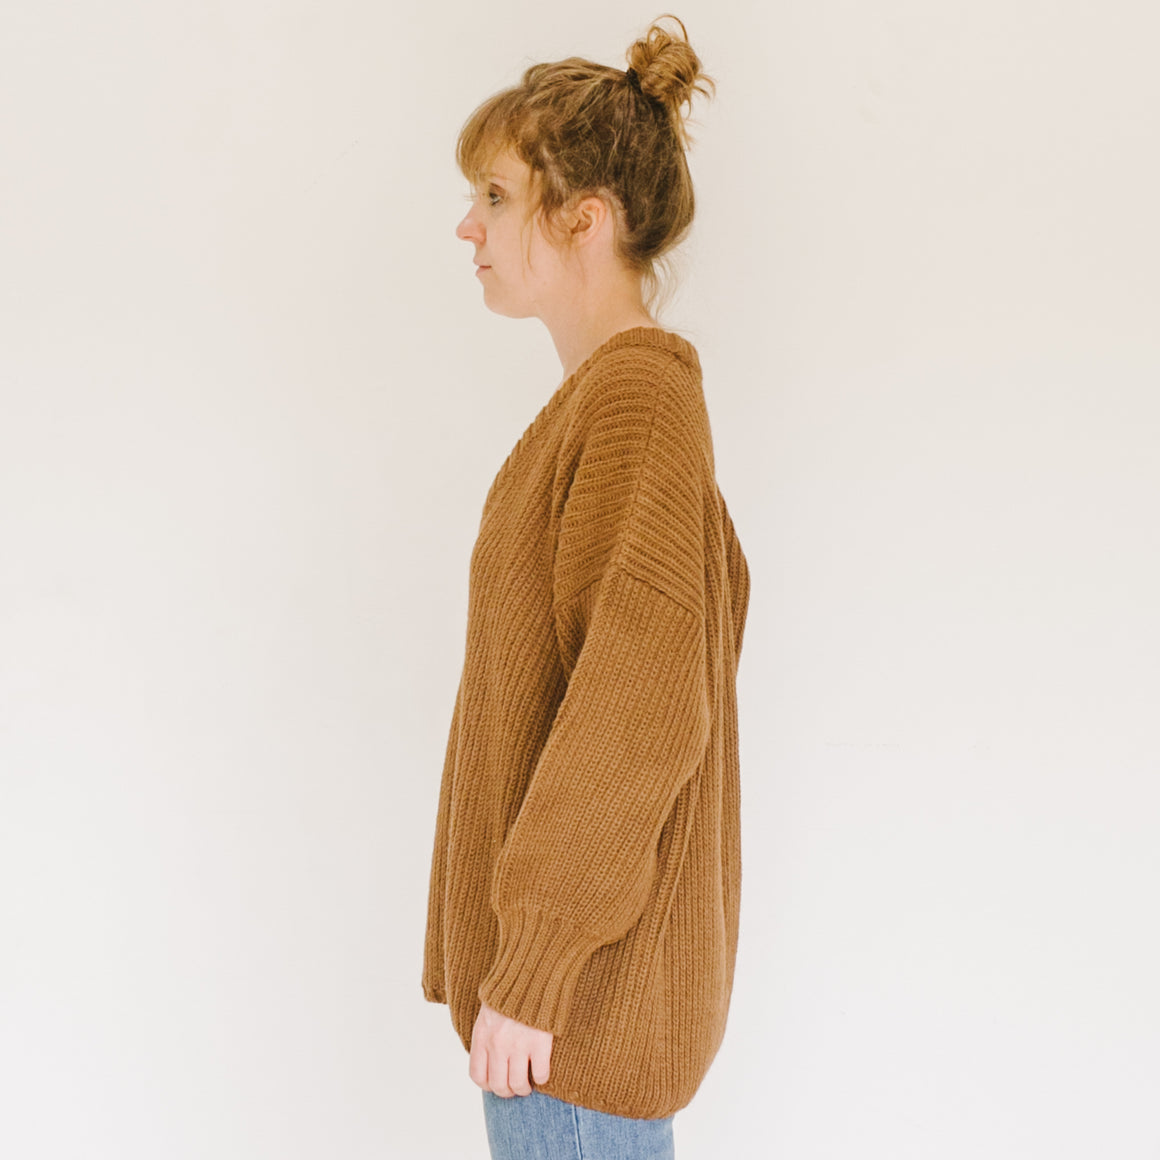 Long V Sweater Ginger - individual-medley